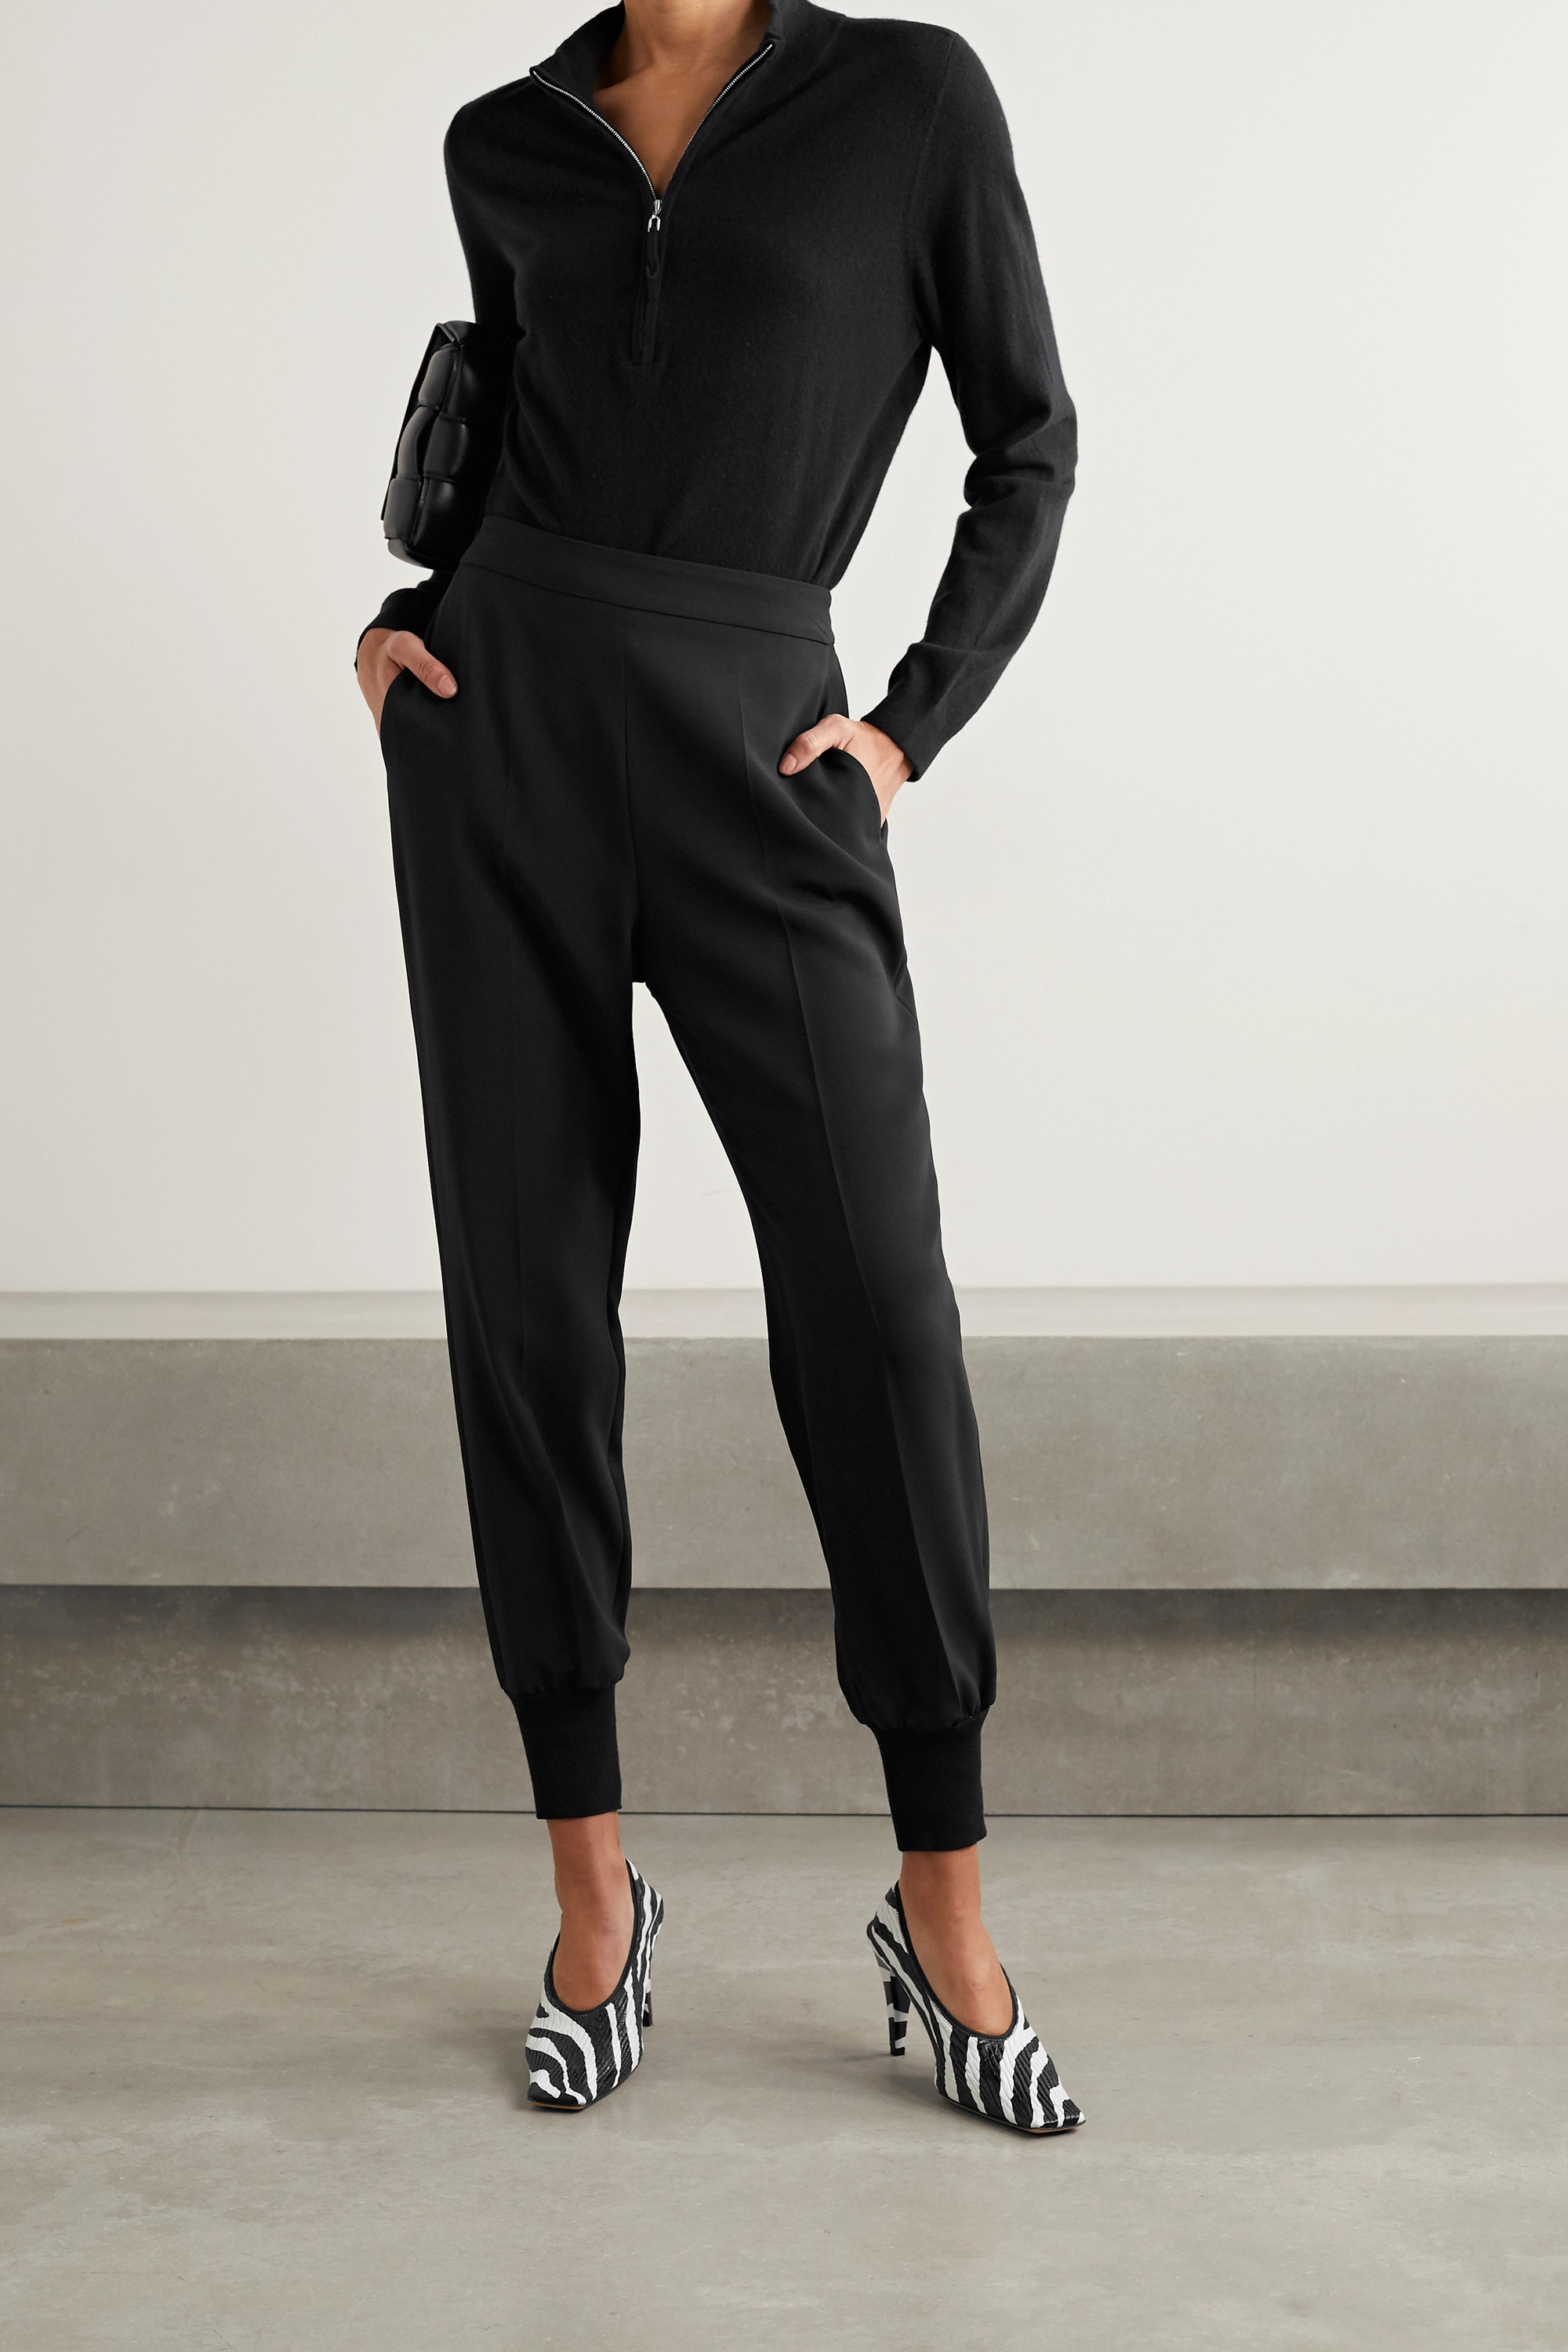 STELLA MCCARTNEY + NET SUSTAIN Julia stretch-cady track pants